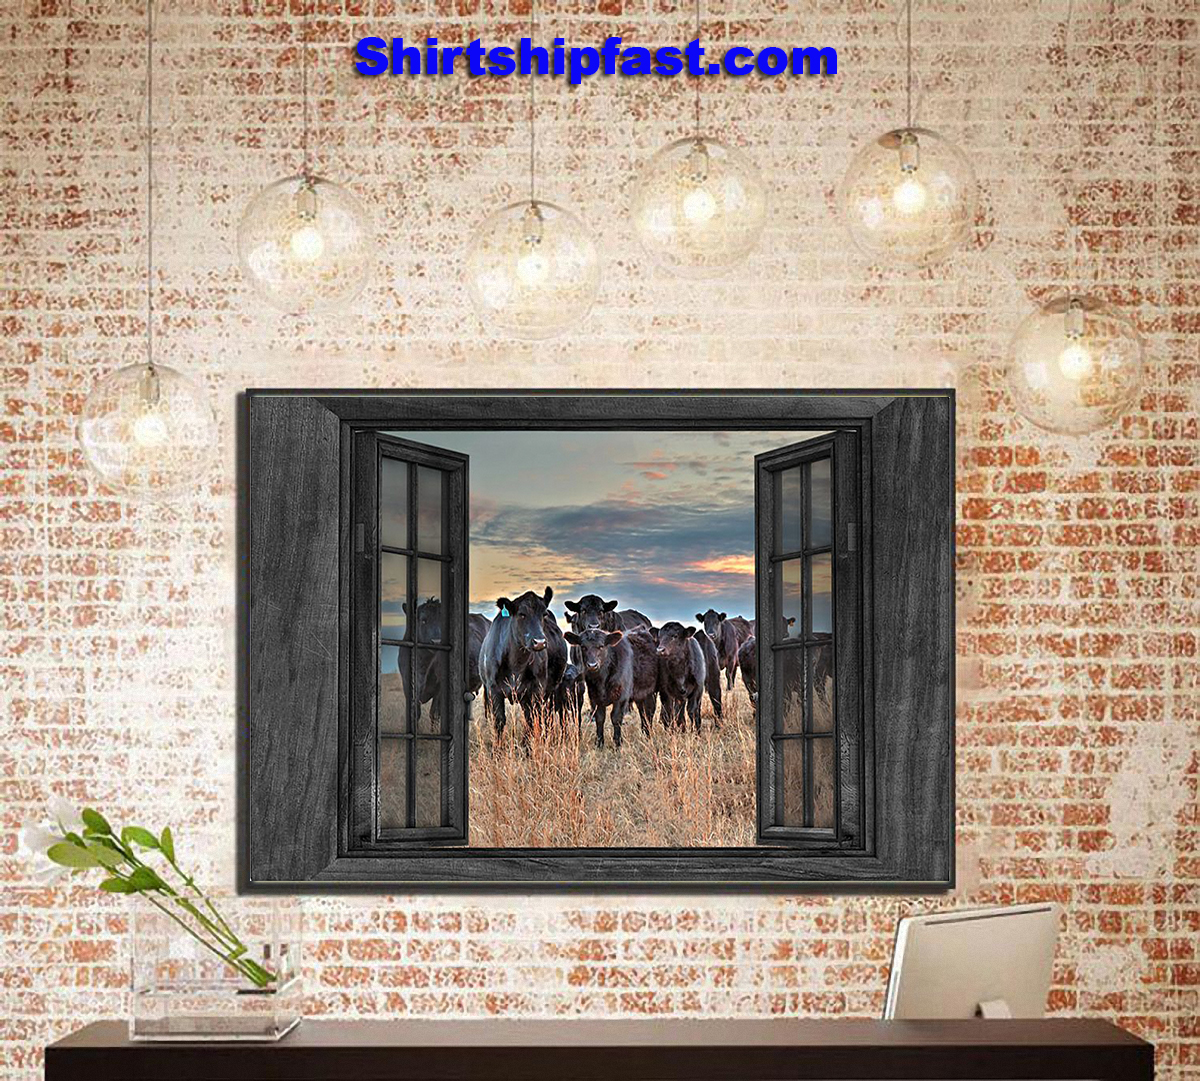 Cows by the window canvas prints